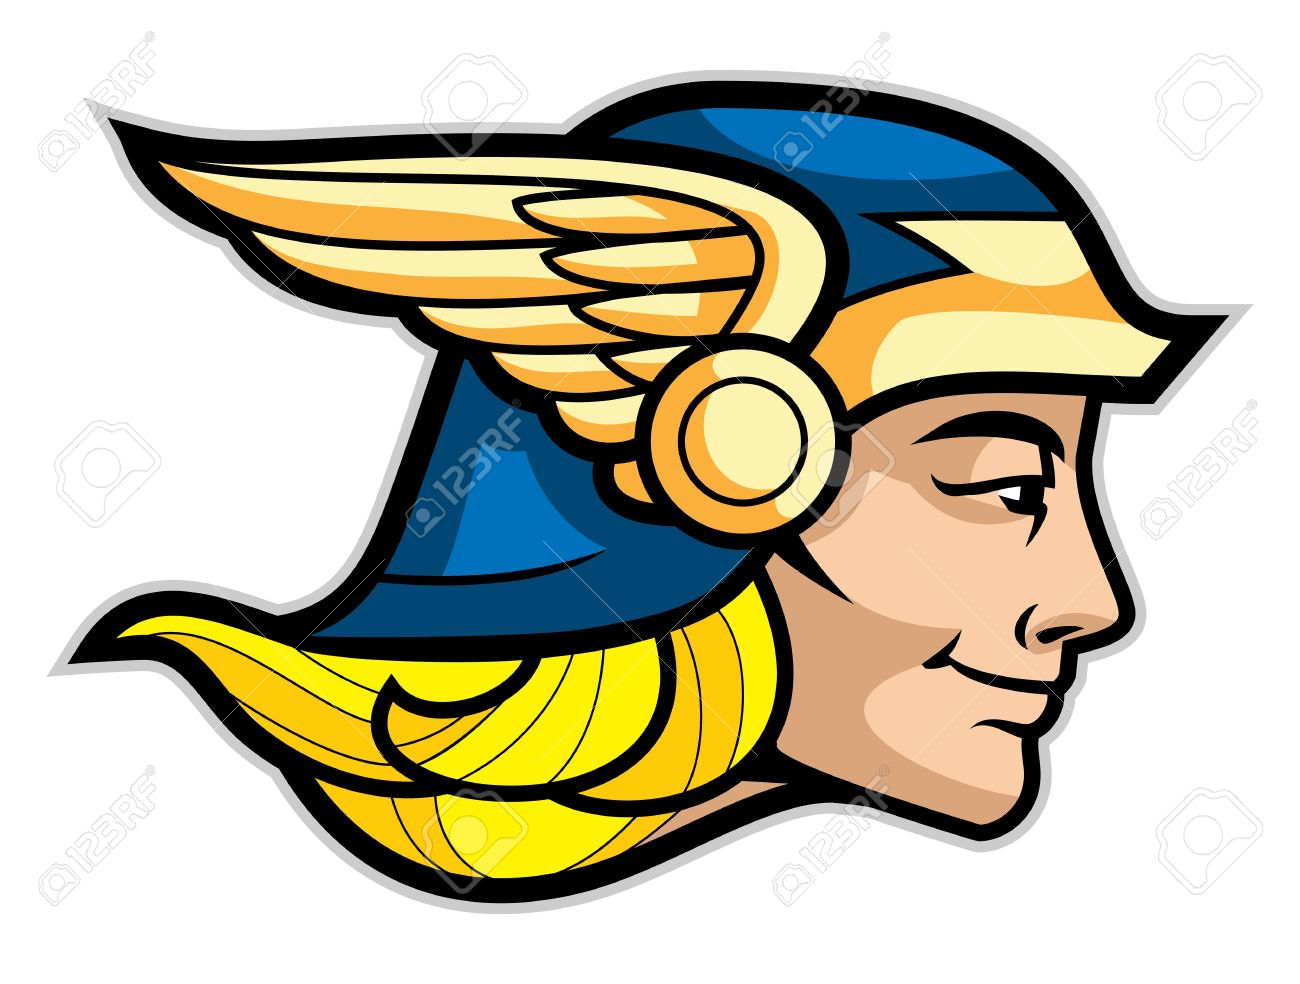 4345 greek mythology stock illustrations cliparts and royalty head of a greek god hermes isolated on white biocorpaavc